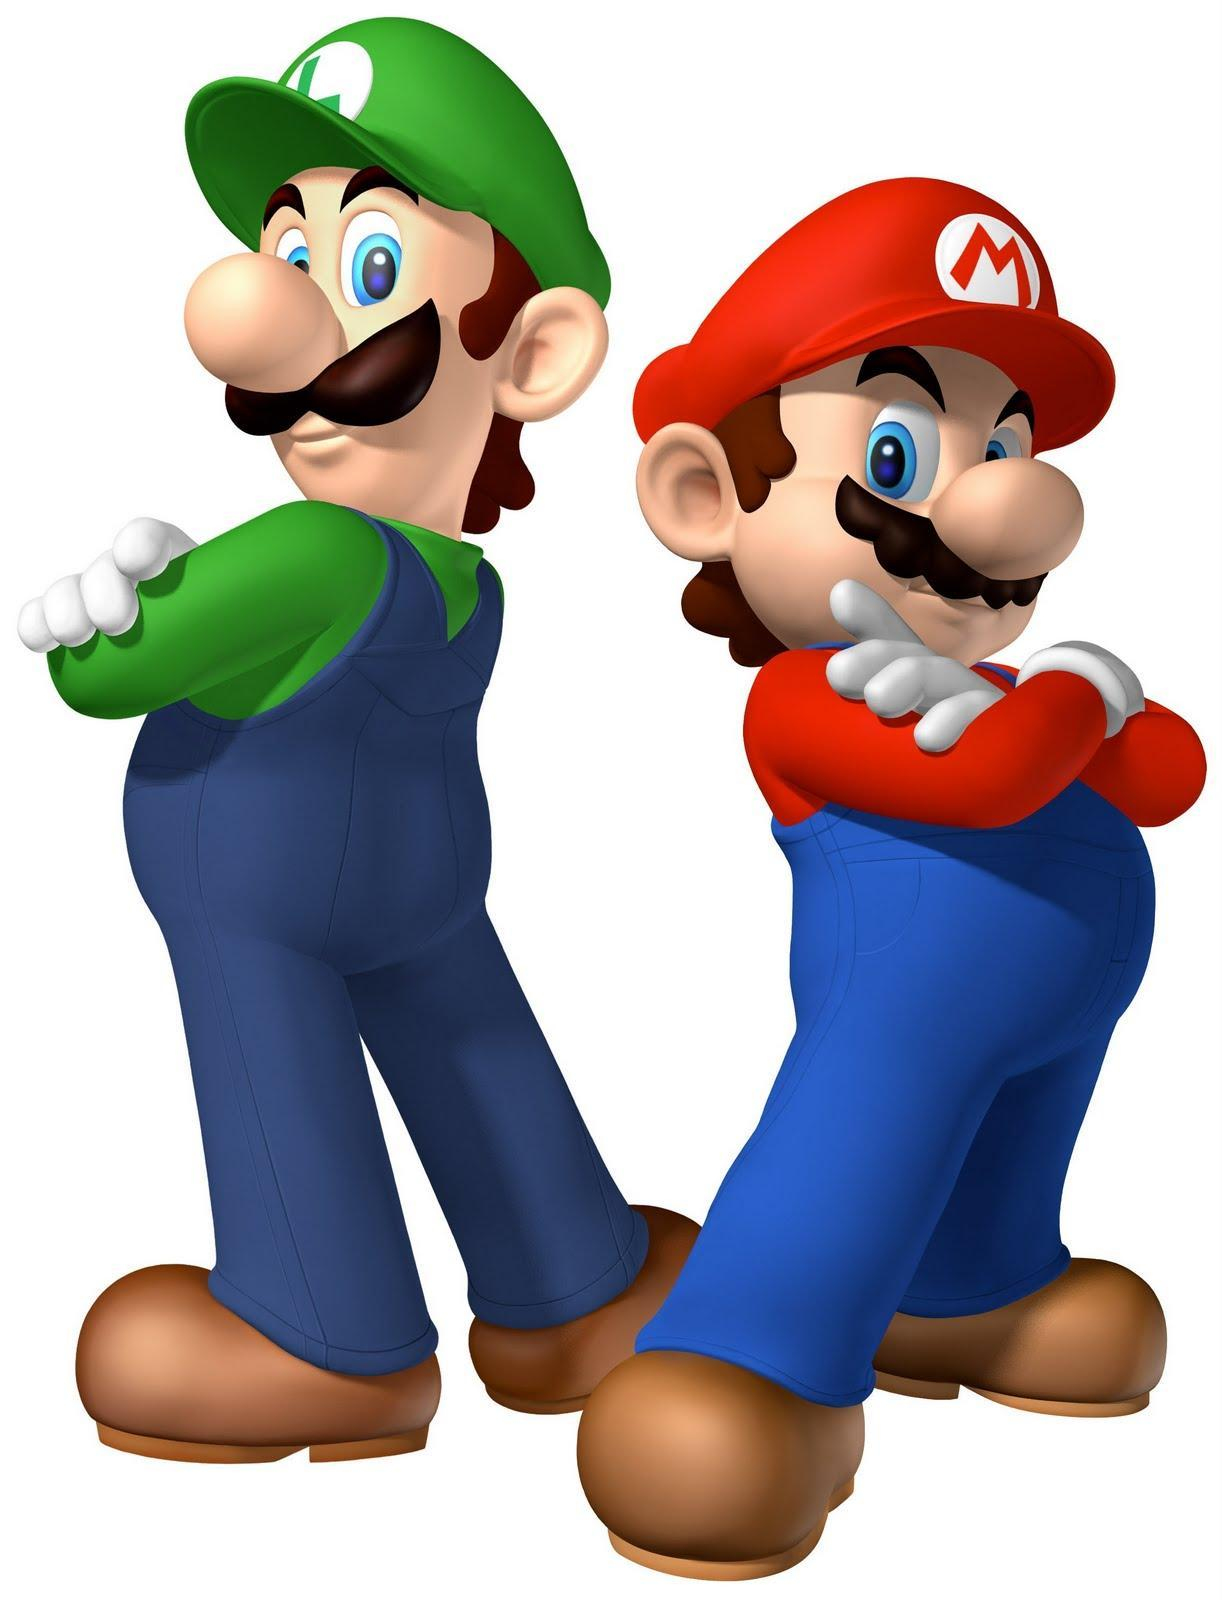 Mario brothers clipart image royalty free library Mario brothers clipart » Clipart Portal image royalty free library